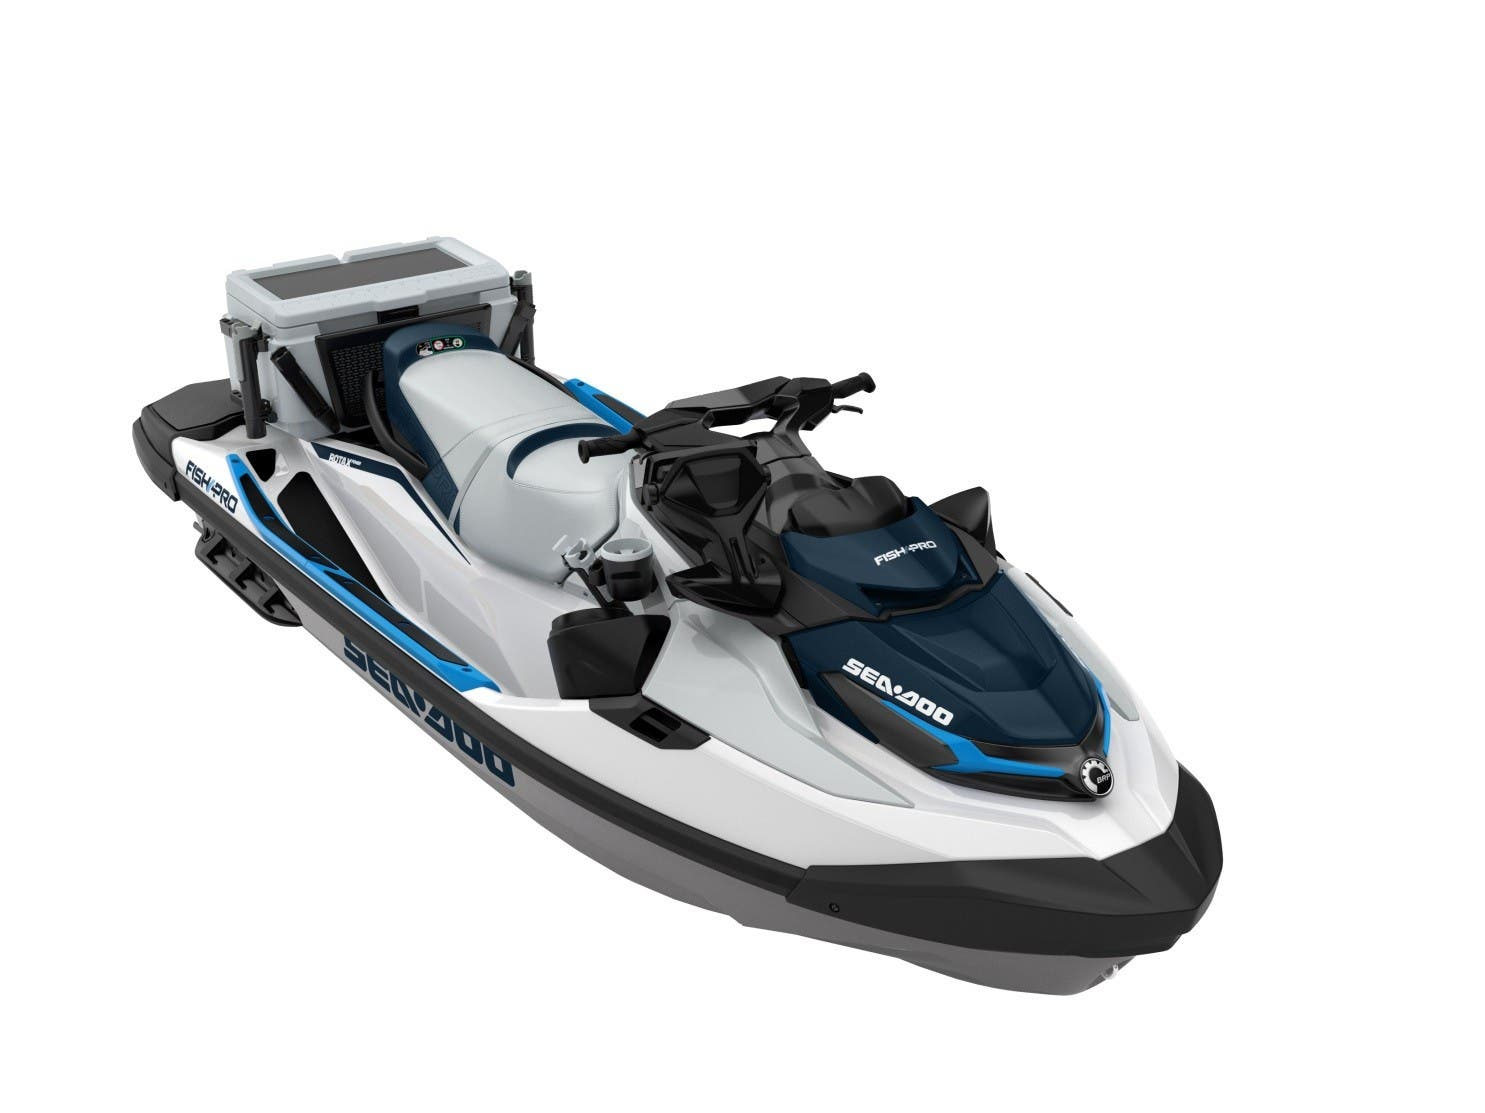 2021 Sea Doo PWC boat for sale, model of the boat is FISH PRO 170 SS IDF & Image # 5 of 6